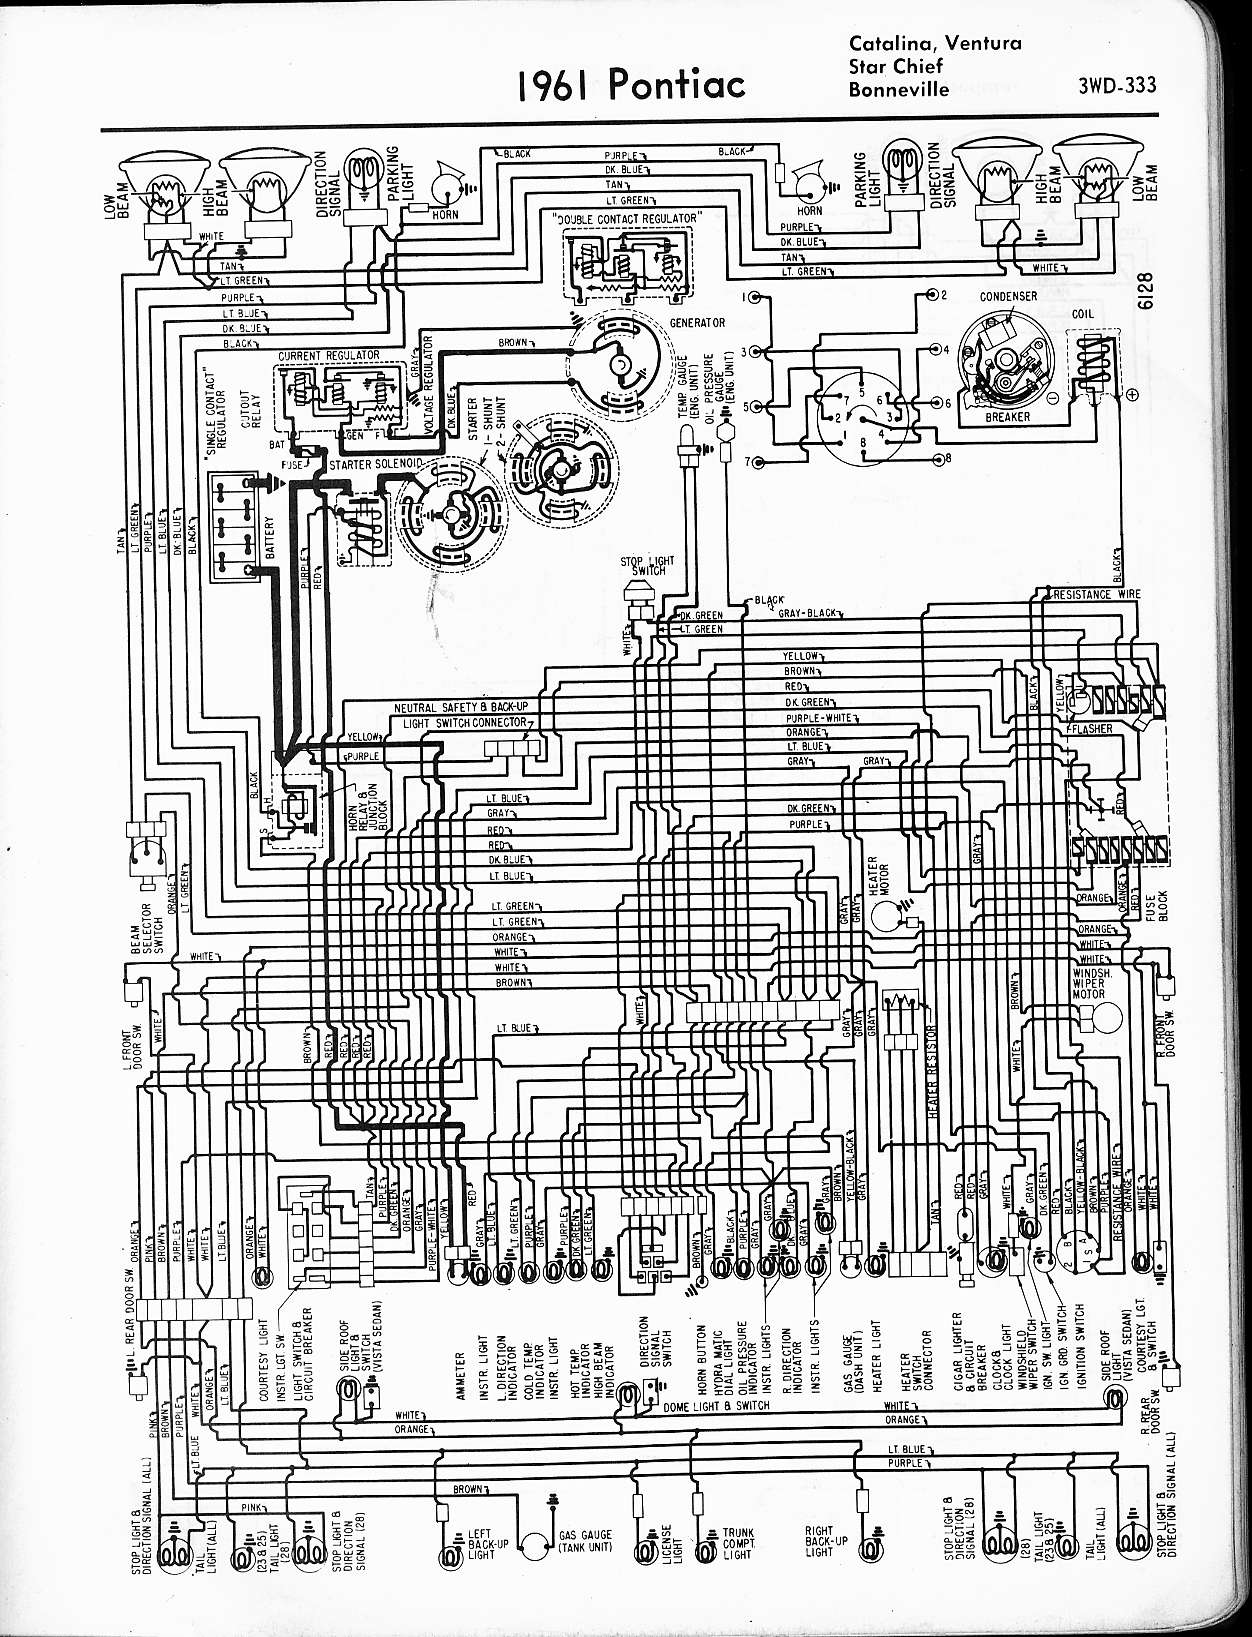 65 pontiac gto wiring diagrams schematics wiring diagrams u2022 rh  parntesis co 70 GTO Wiring-Diagram 1966 GTO Wiring-Diagram